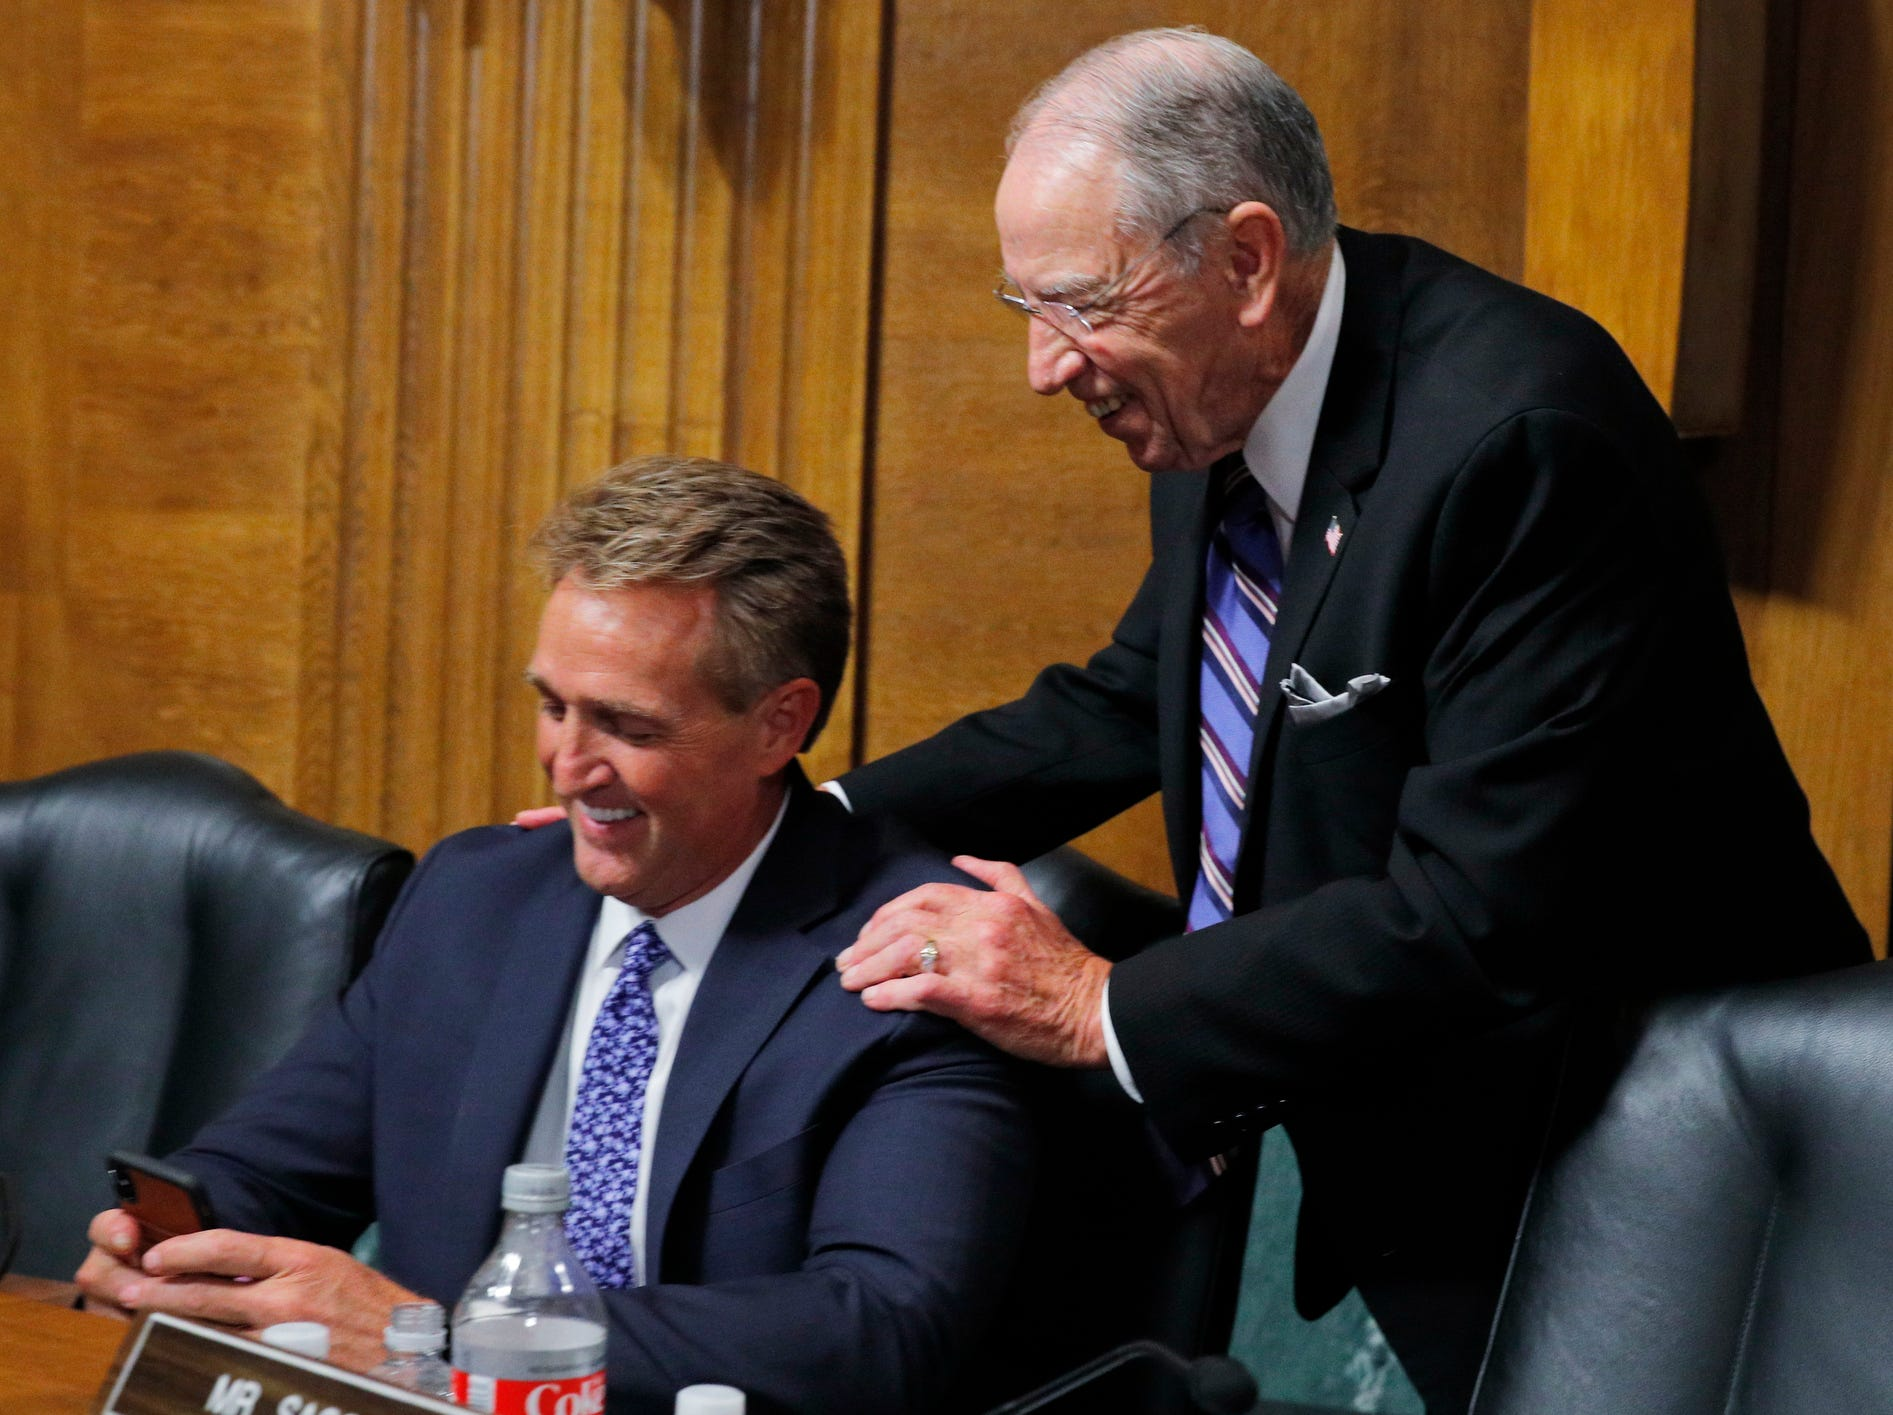 Senate Judiciary Chairman Chuck Grassley (R) speaks with Senator Jeff Flake (L) during a break during the Senate Judiciary Committee hearing on the nomination of Brett Kavanaugh to be an associate justice of the Supreme Court.